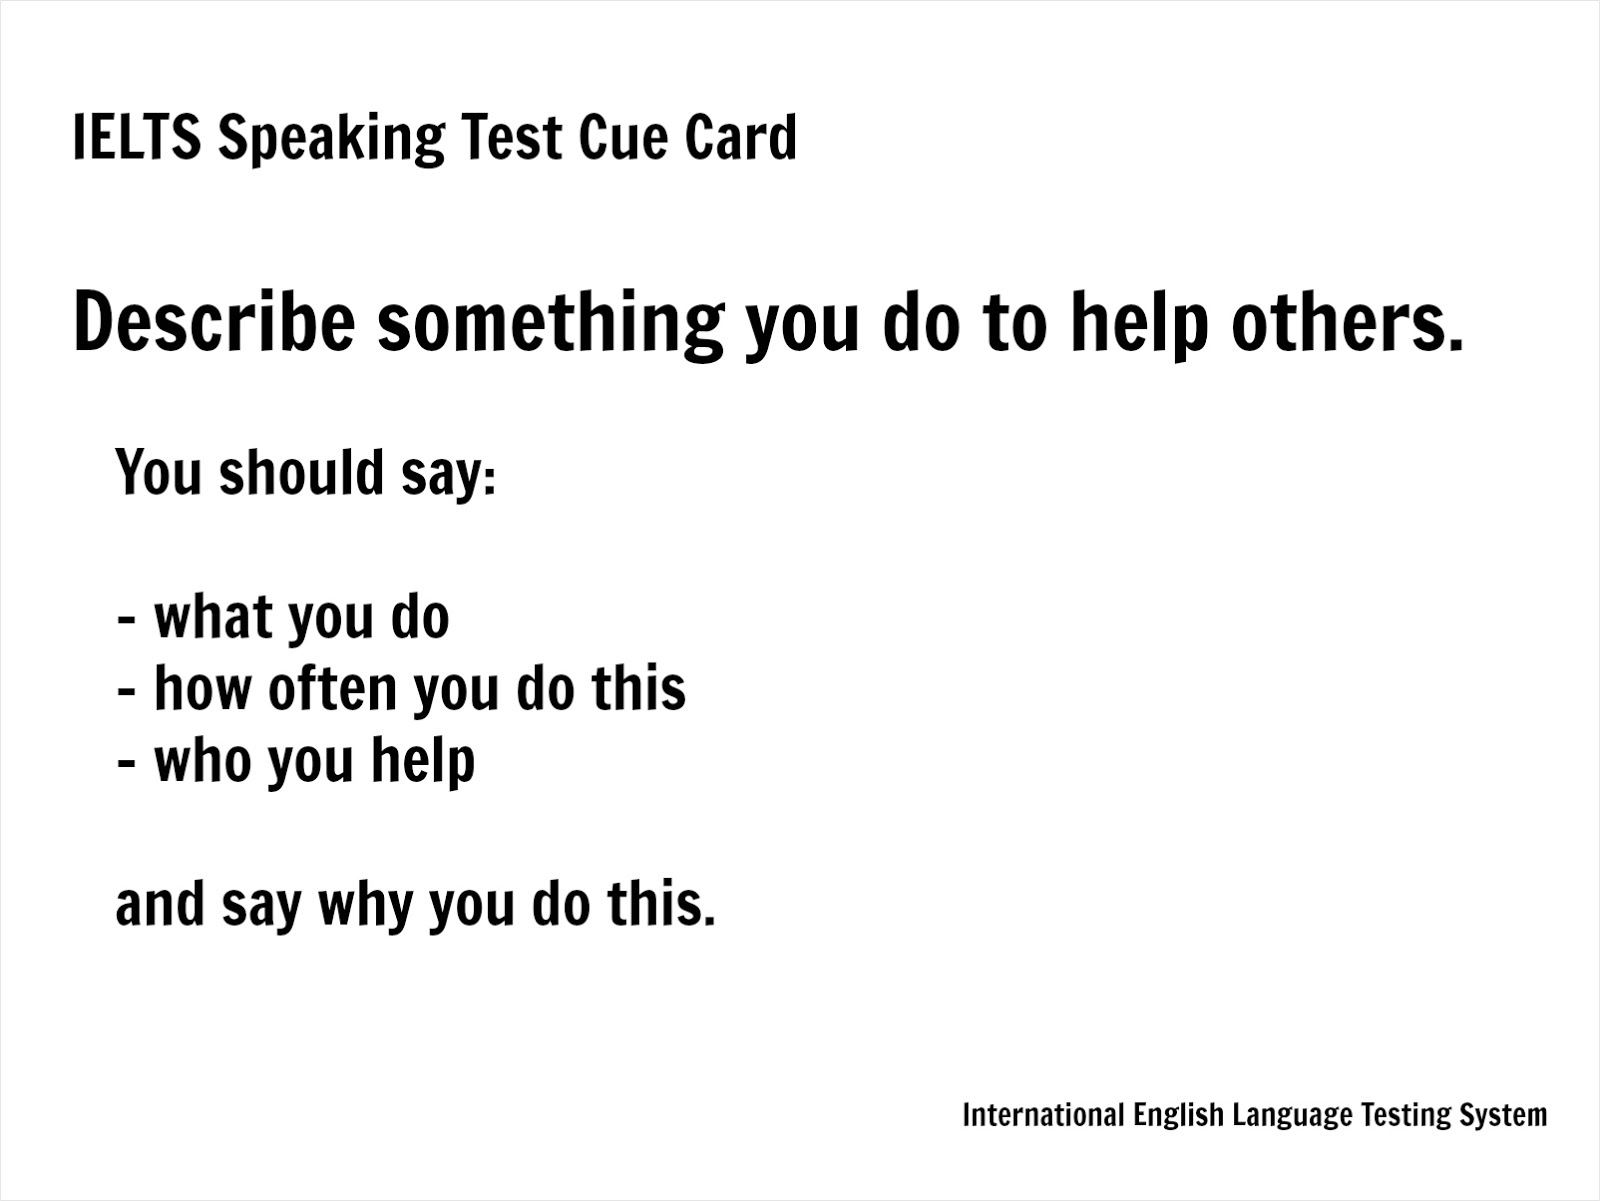 Describe something you do to help others - IELTS speaking cue card